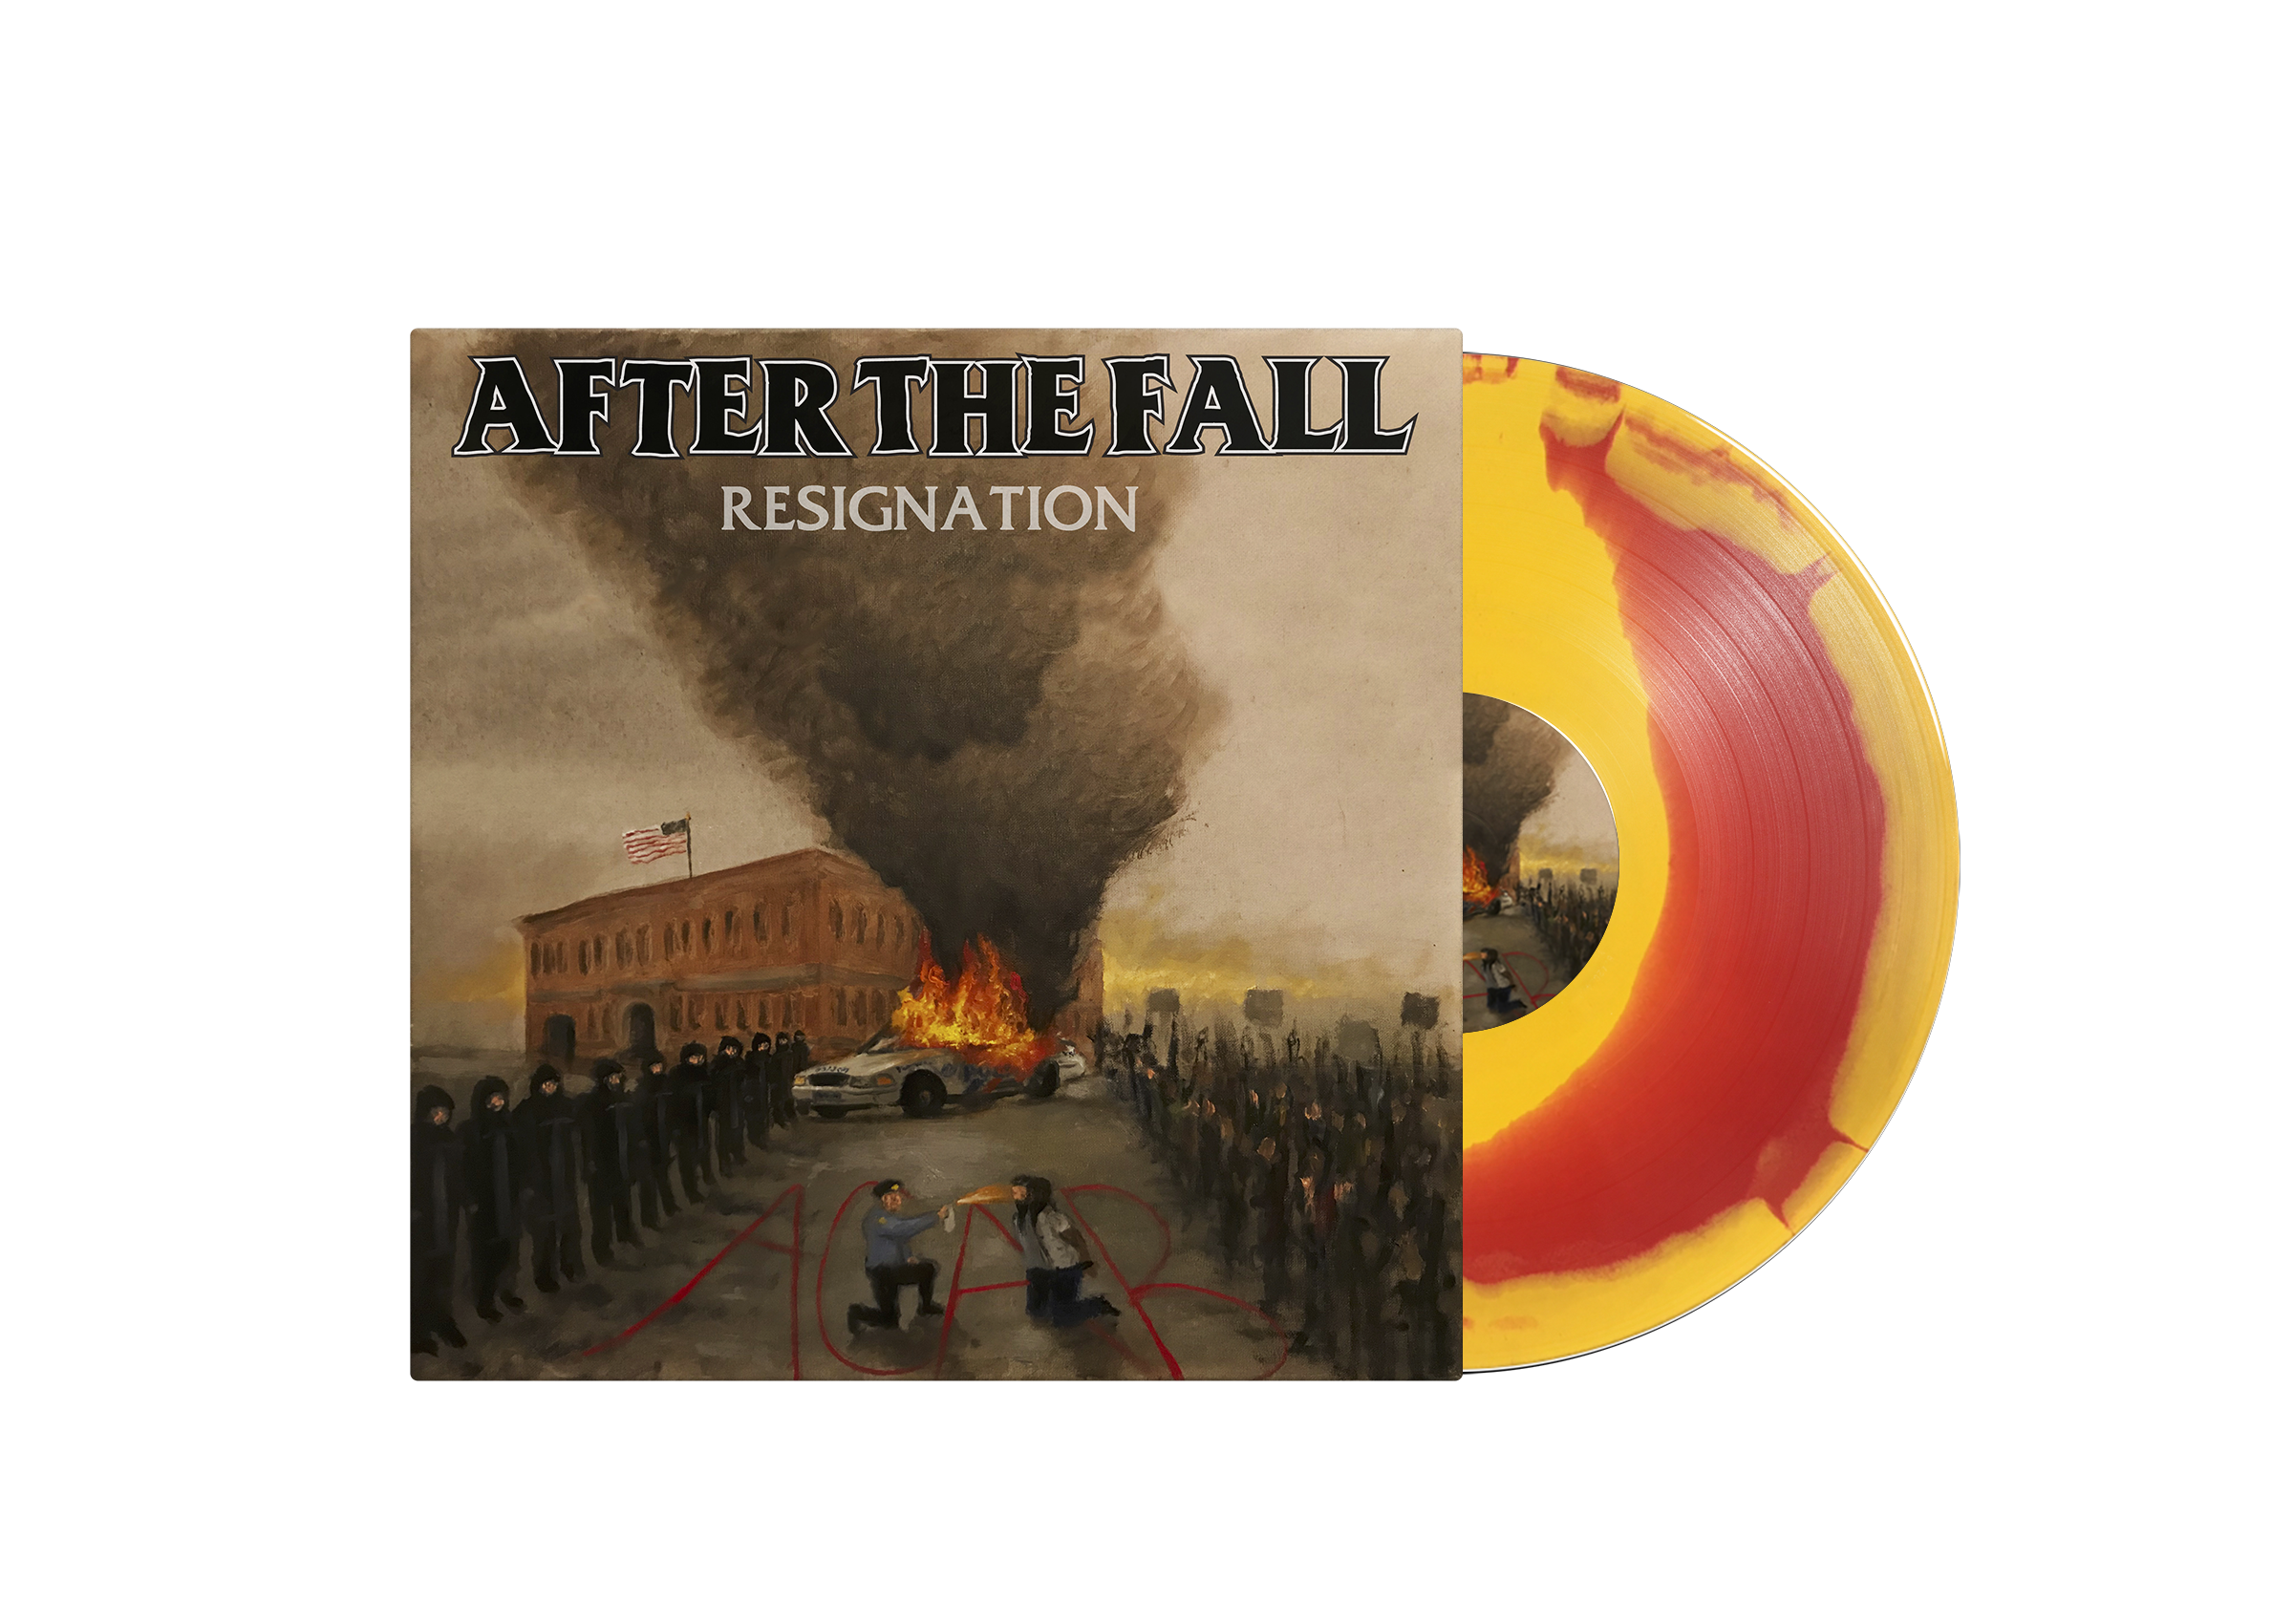 AFTER THE FALL - RESIGNATION LP / CD & SHIRT BUNDLES